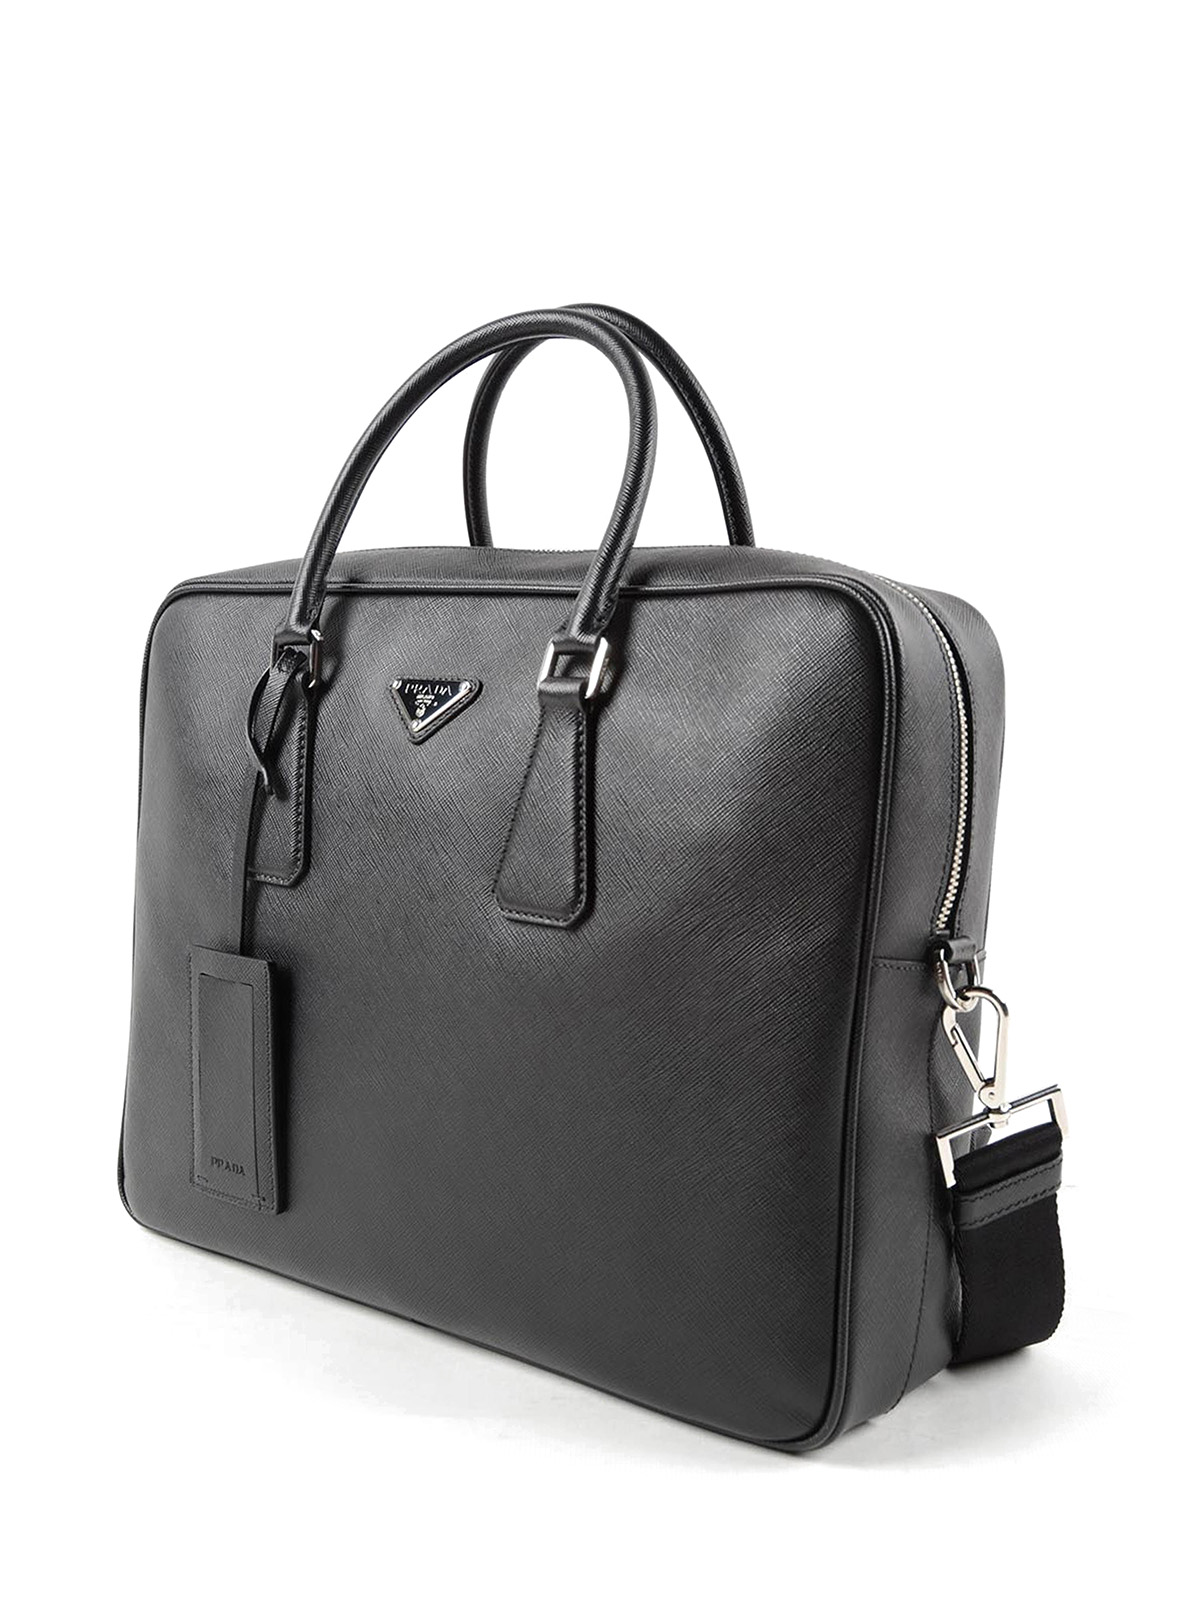 prada aktentasche tasche dokumententasche laptoptasche leder saffiano schwarz. Black Bedroom Furniture Sets. Home Design Ideas